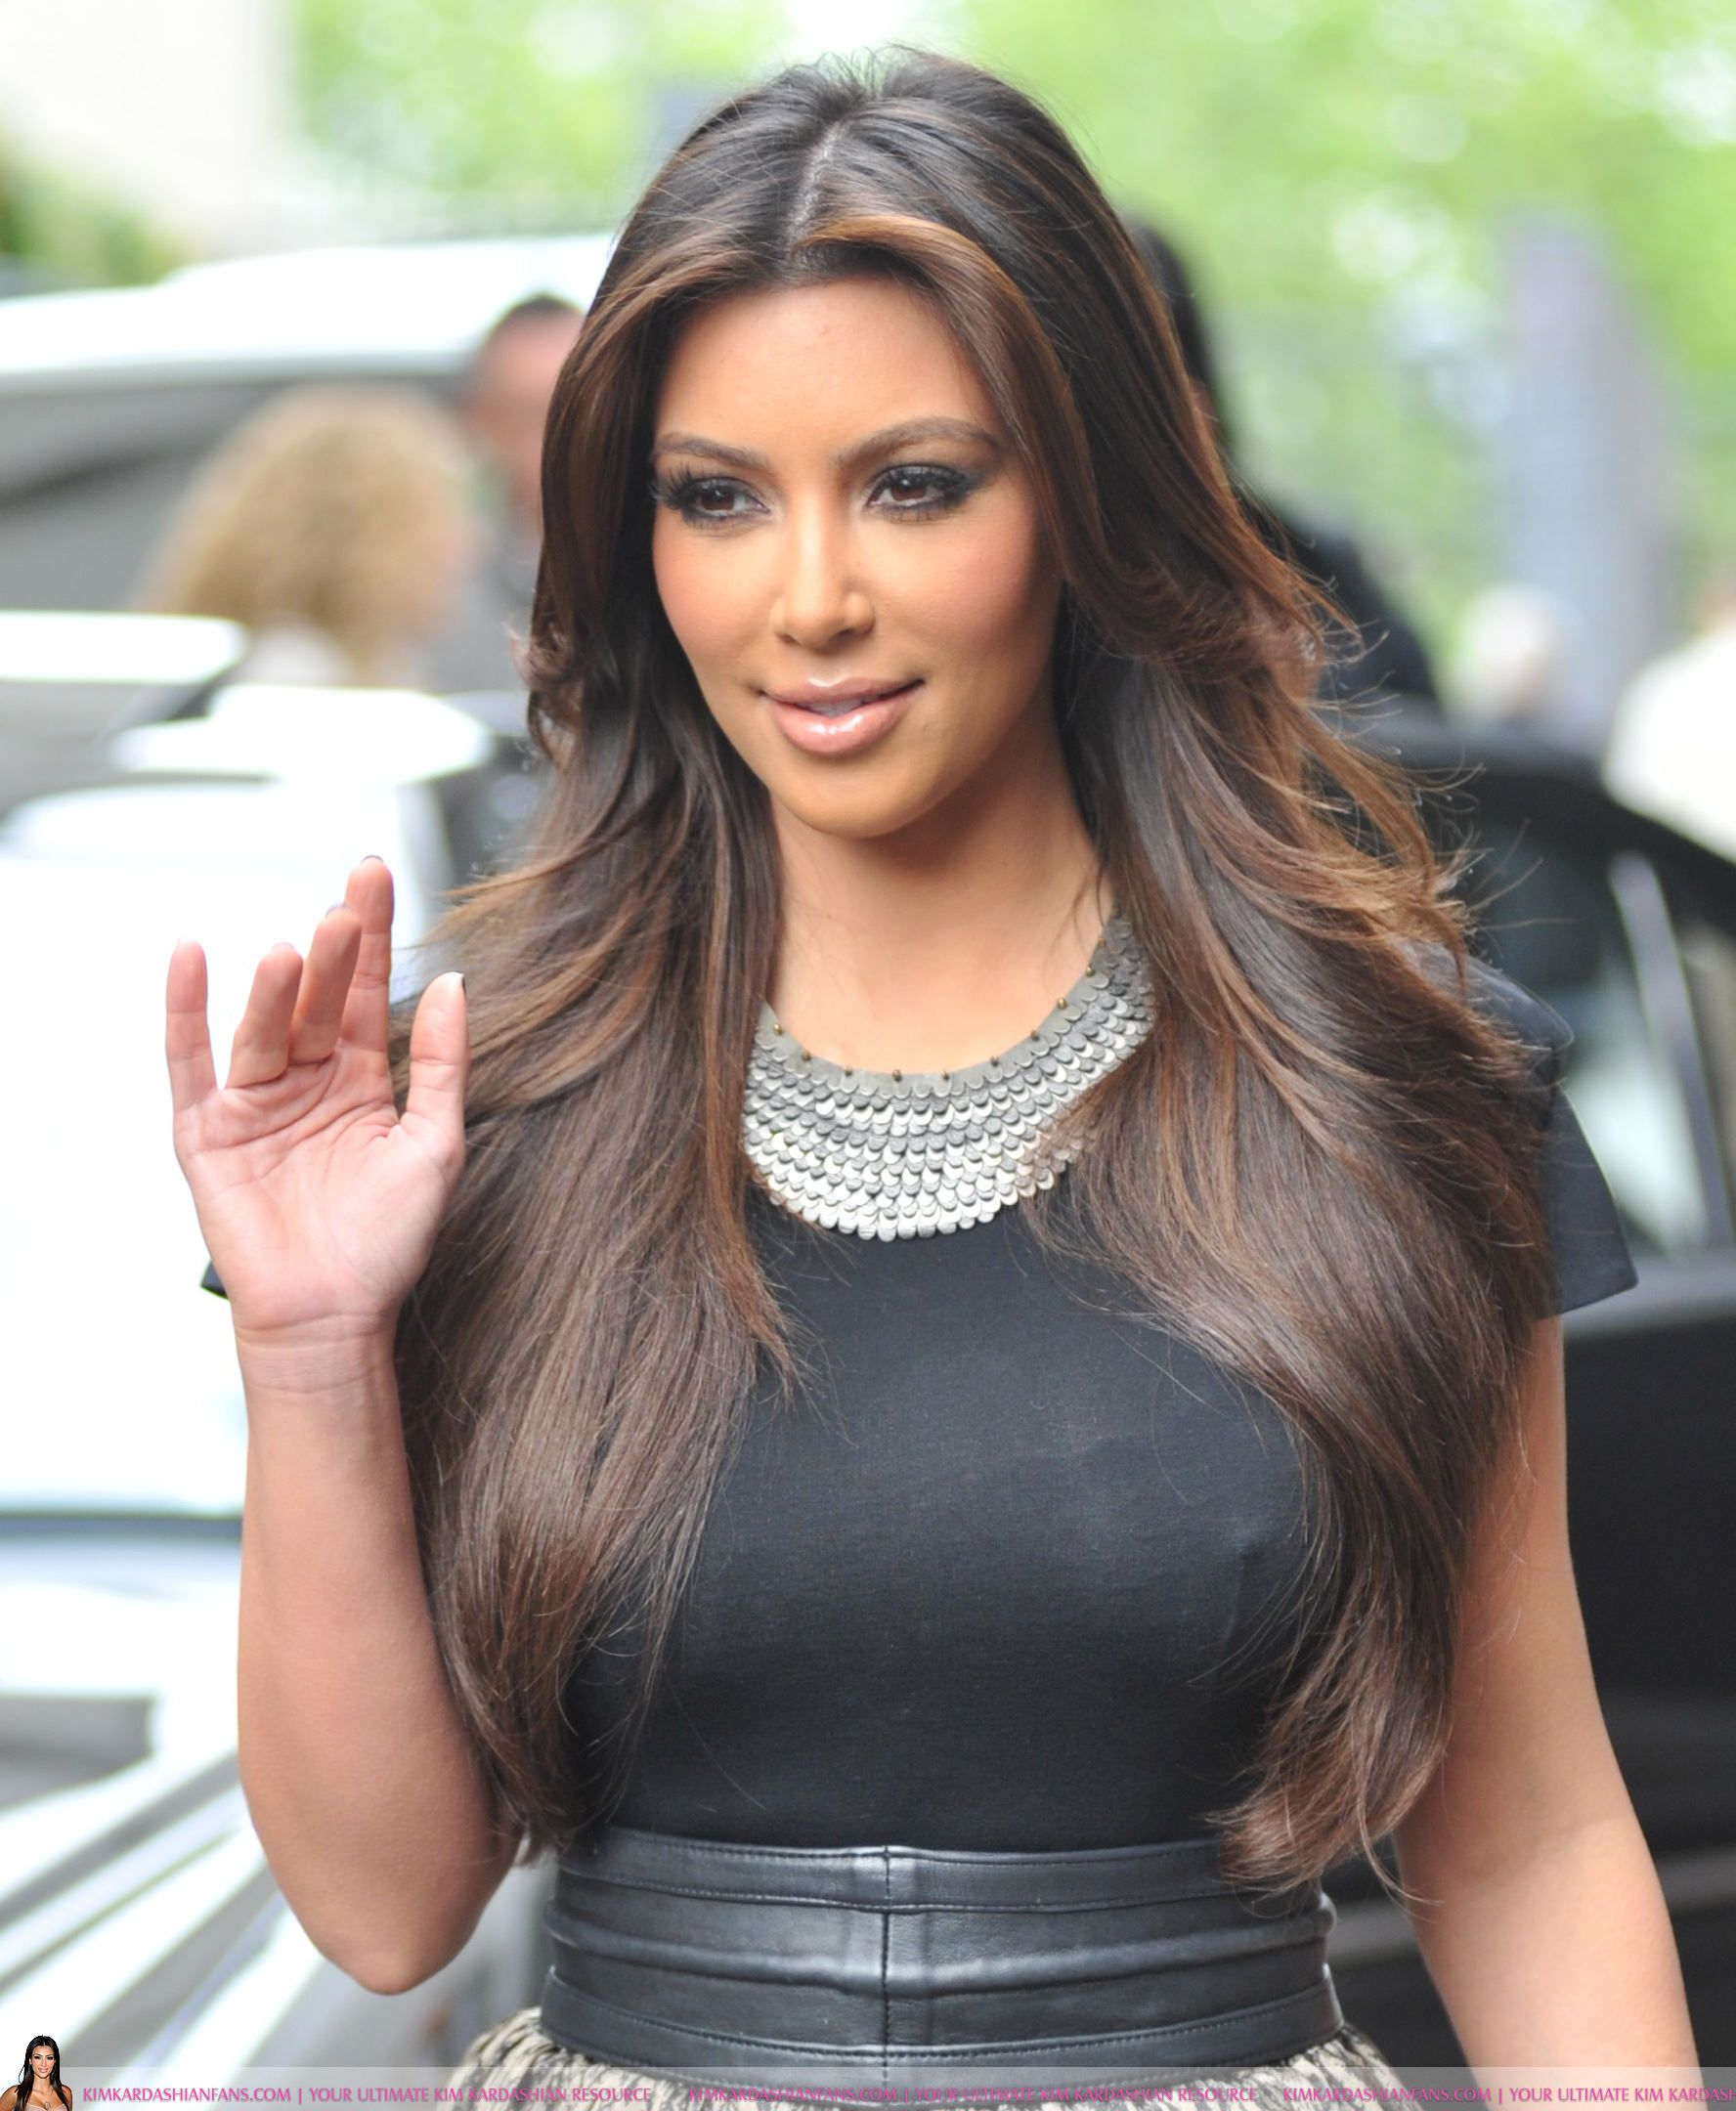 kardashian hair style blowout looks hair blowout 4406 | 4a70ae85003b507439f51ec1f3f361d4